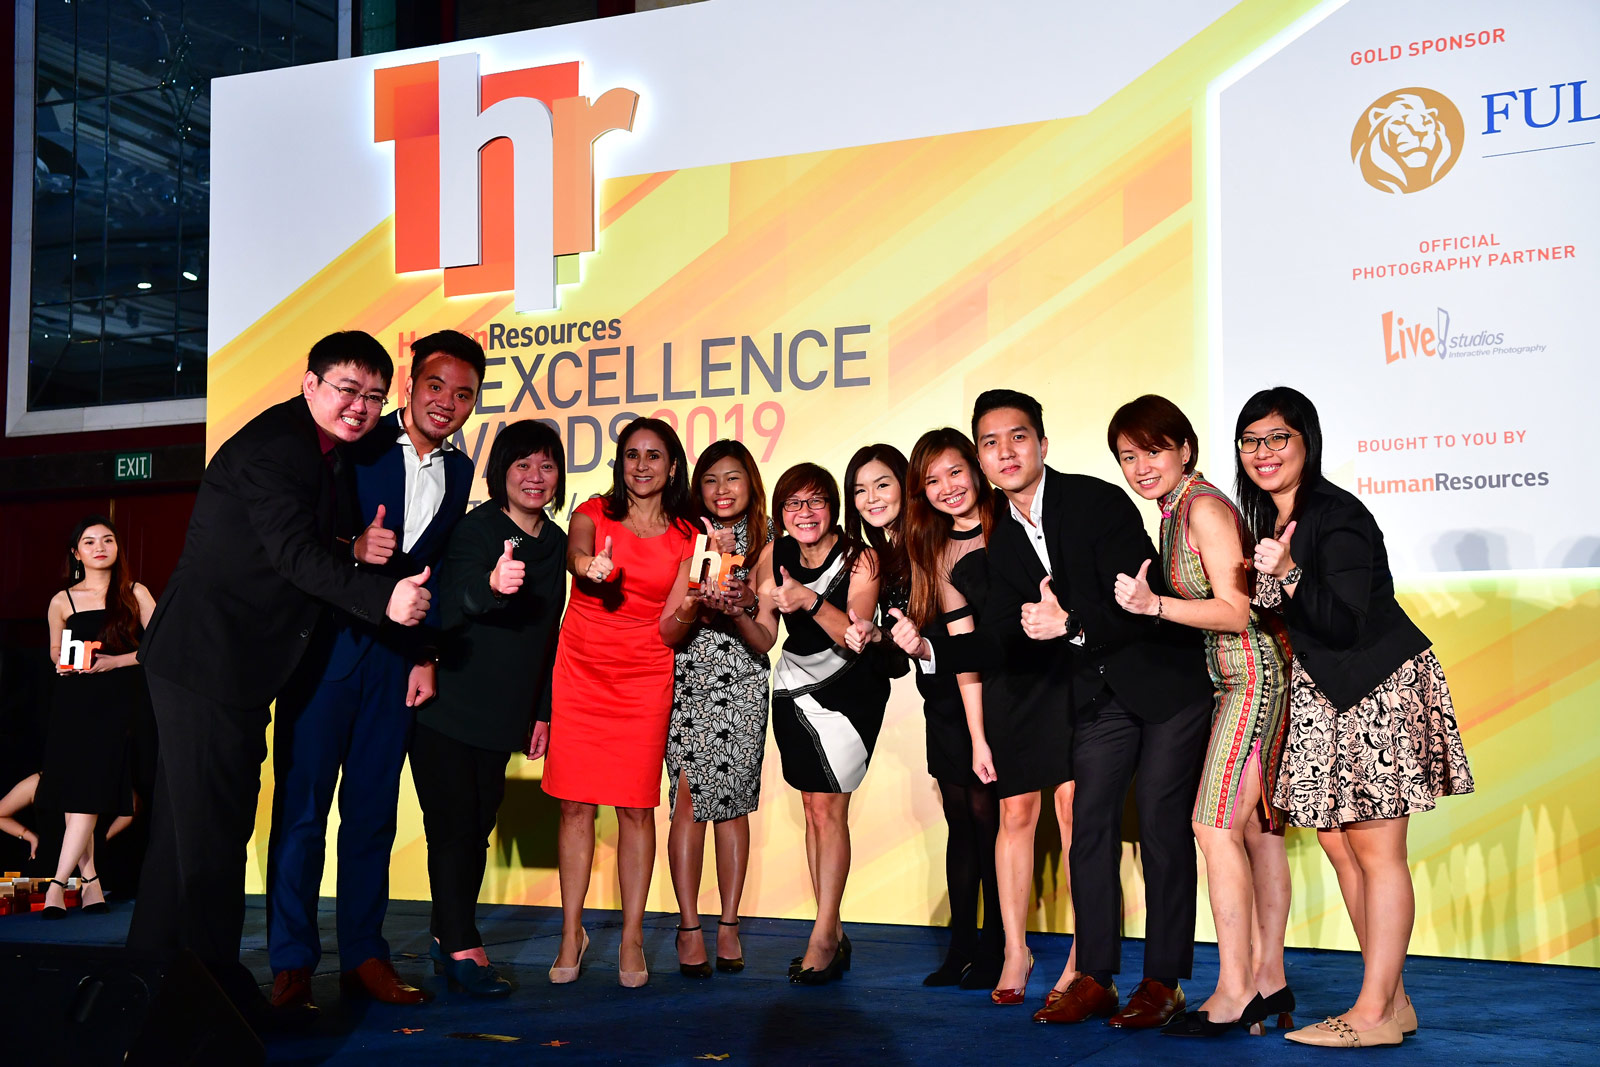 HR Excellence Award – Bronze for Excellence in Recruitment